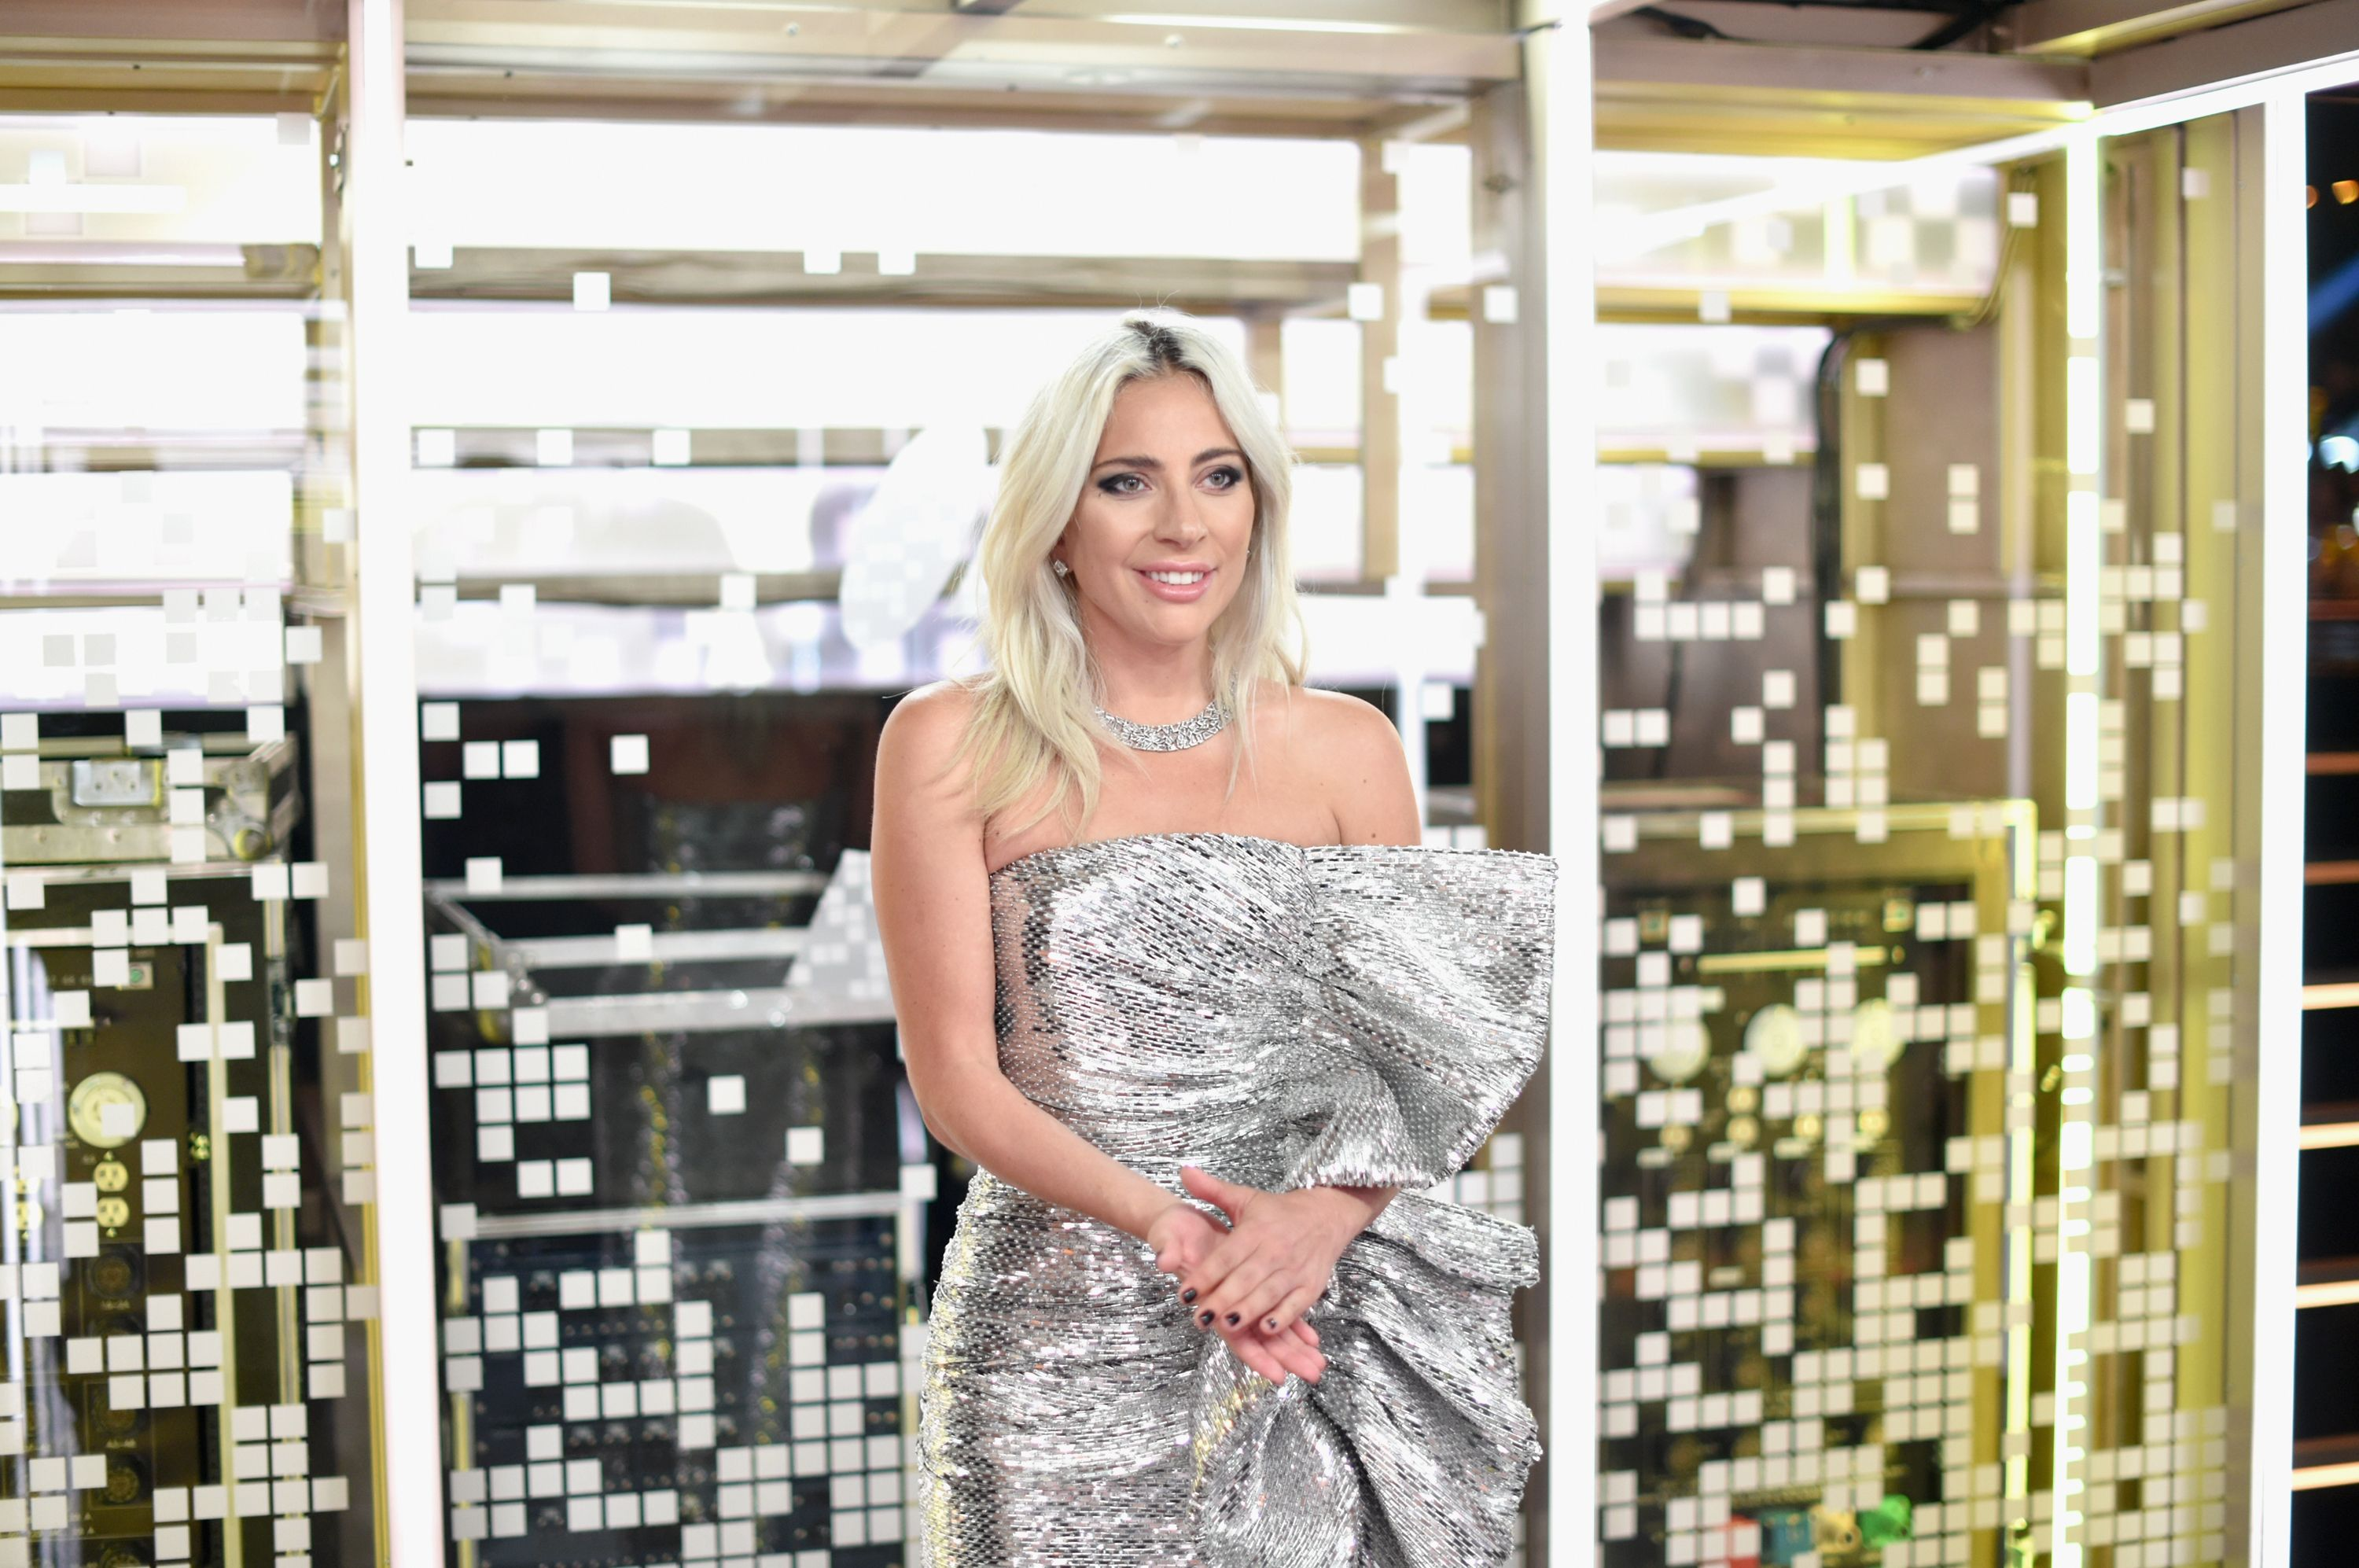 Does Lady Gaga Have Children? The Superstar Has Said She Wants 'Tons Of Kids'